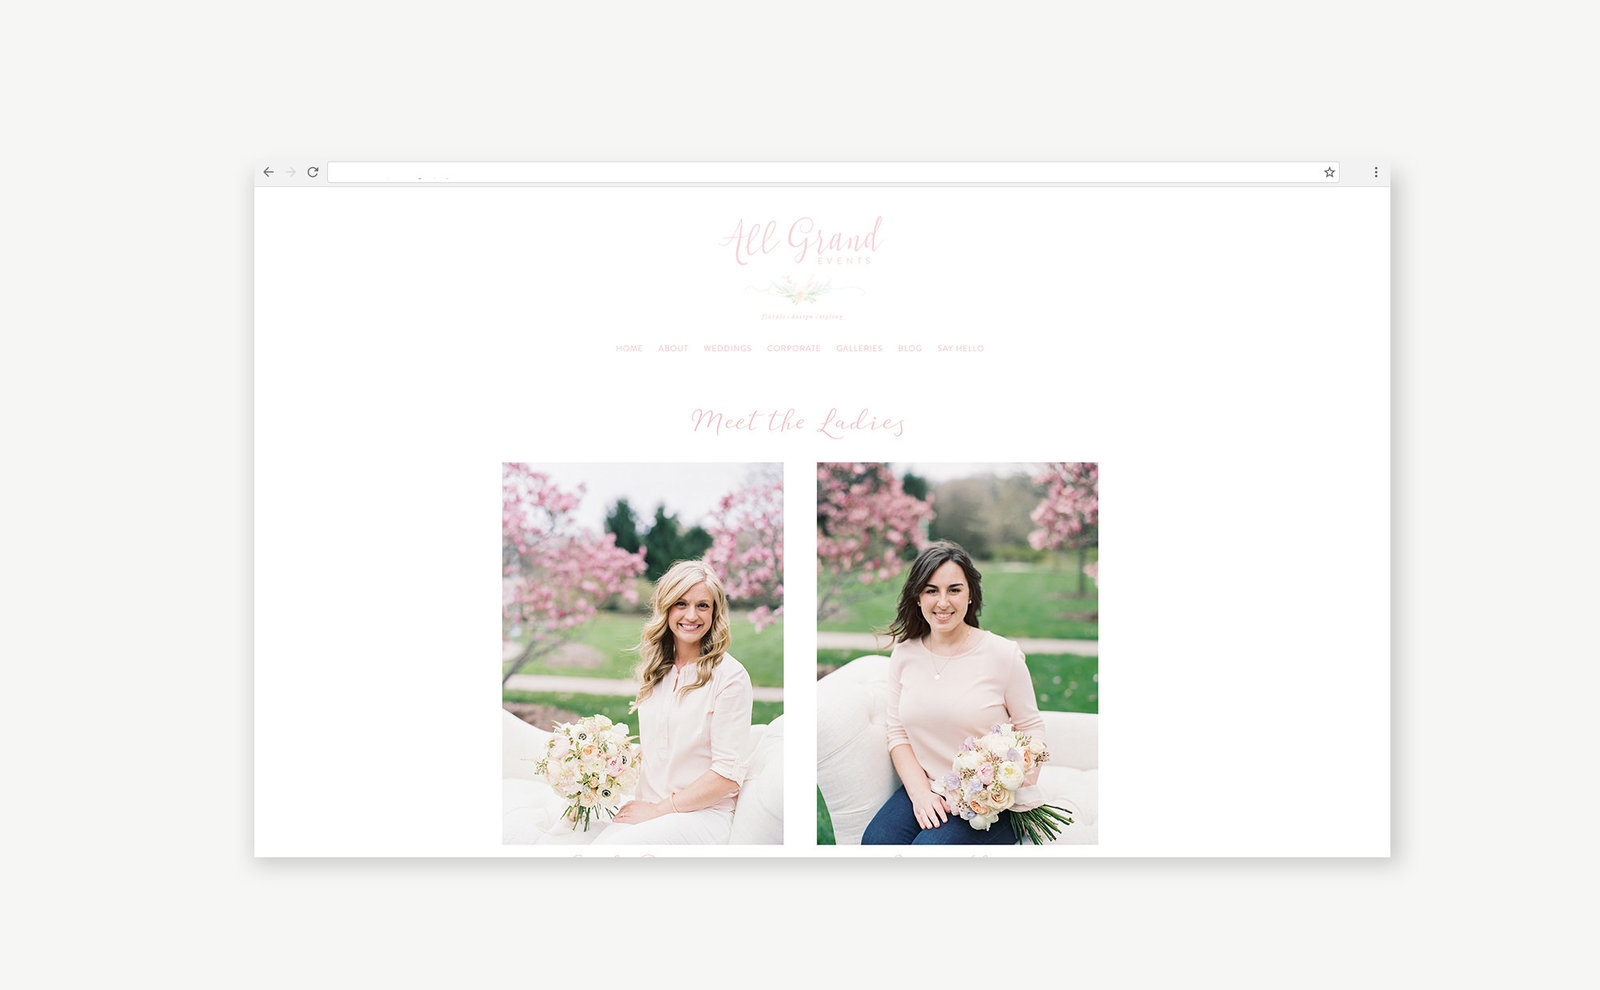 branding-for-florists-web-design-all-grand-events-02